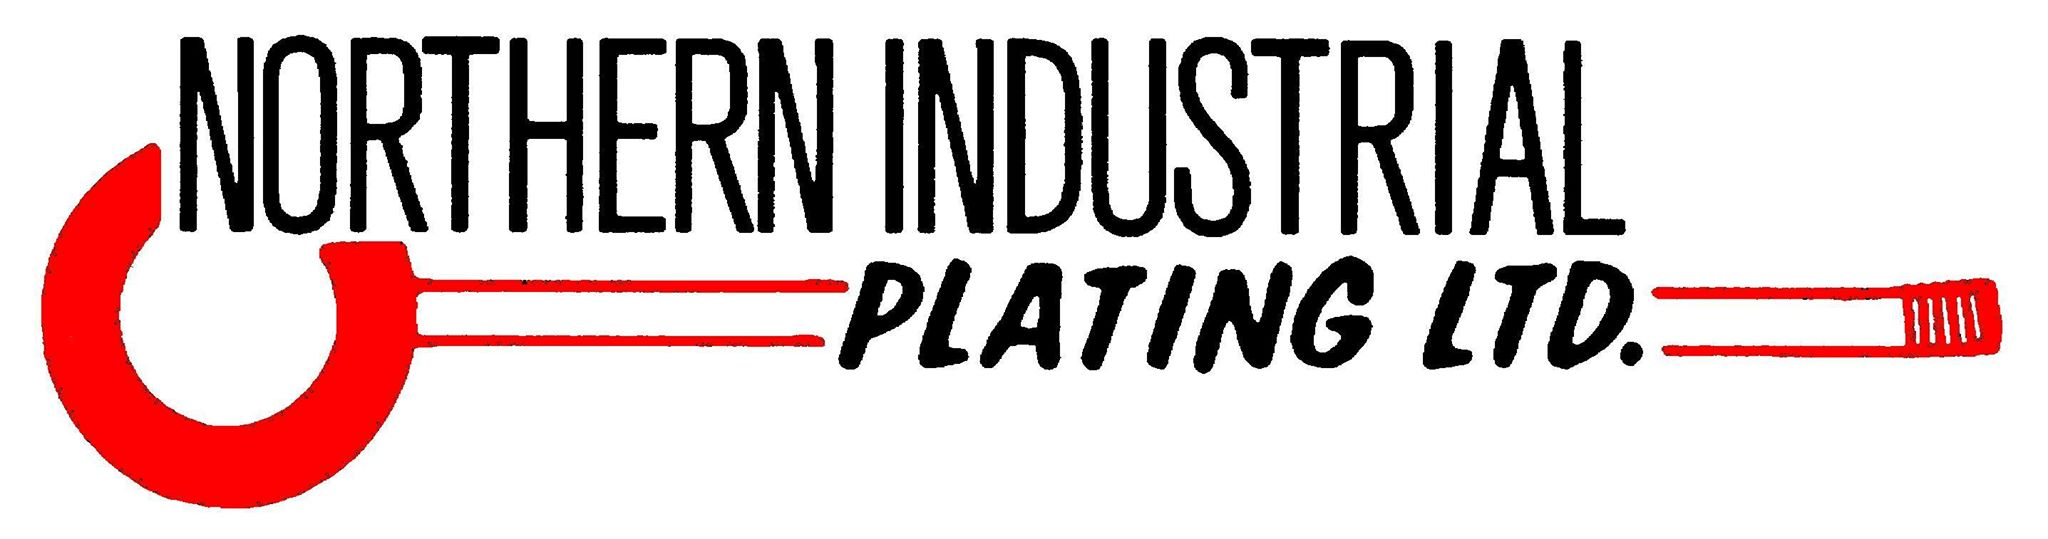 Northern Industrial Plating